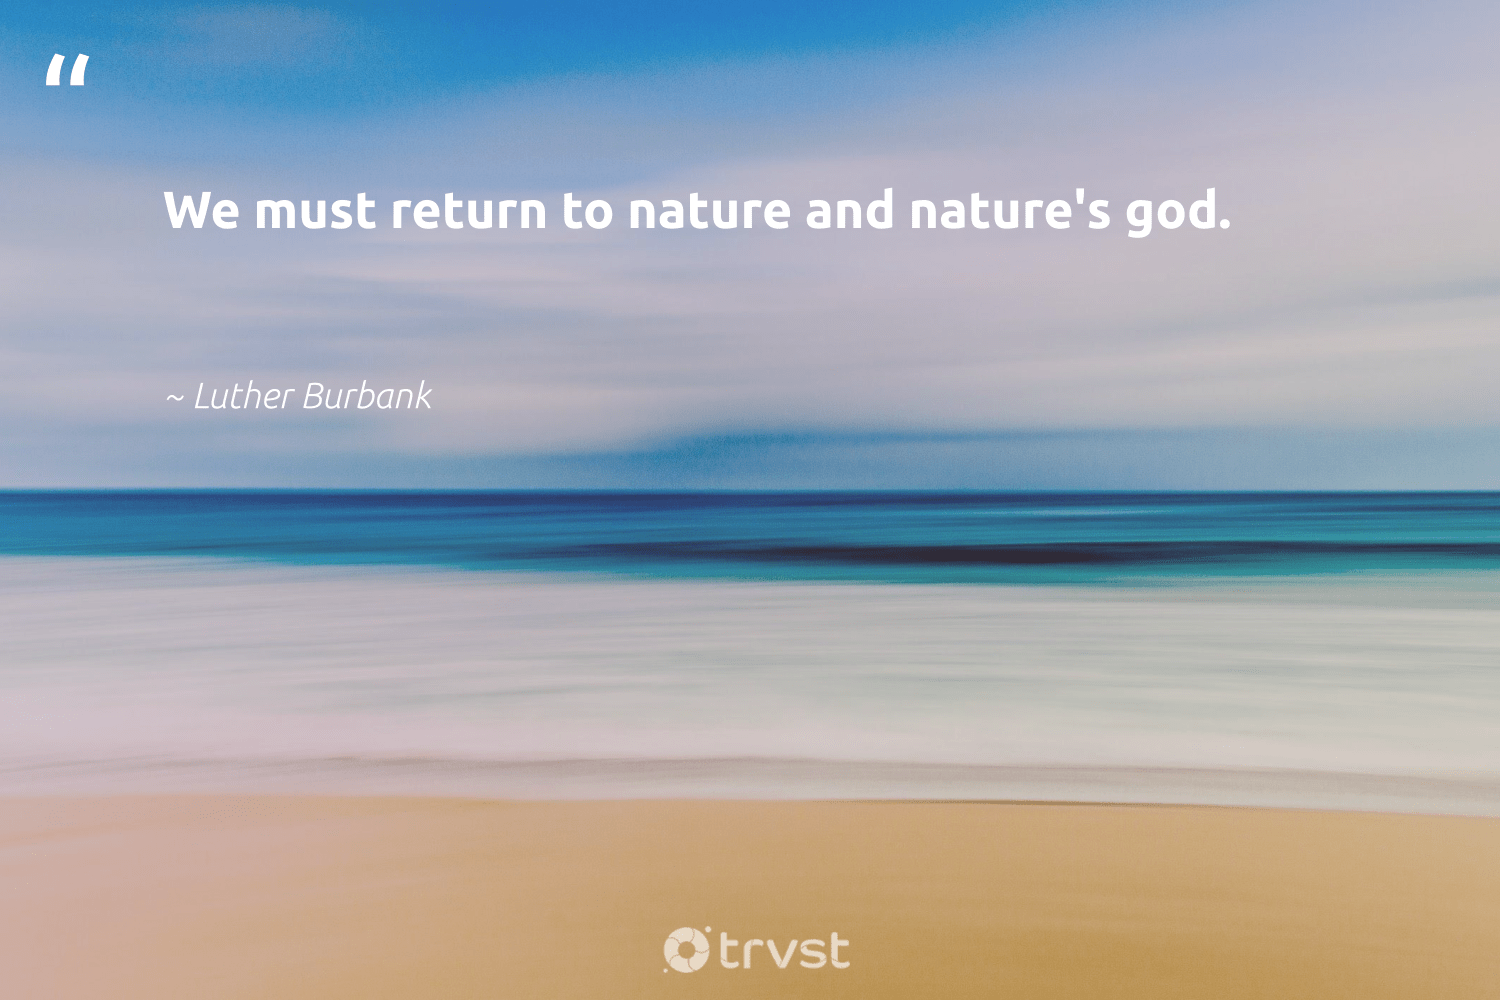 """""""We must return to nature and nature's god.""""  - Luther Burbank #trvst #quotes #environment #nature #green #sustainable #socialchange #planet #environmentallyfriendly #wildlifeplanet #dotherightthing #conservation"""